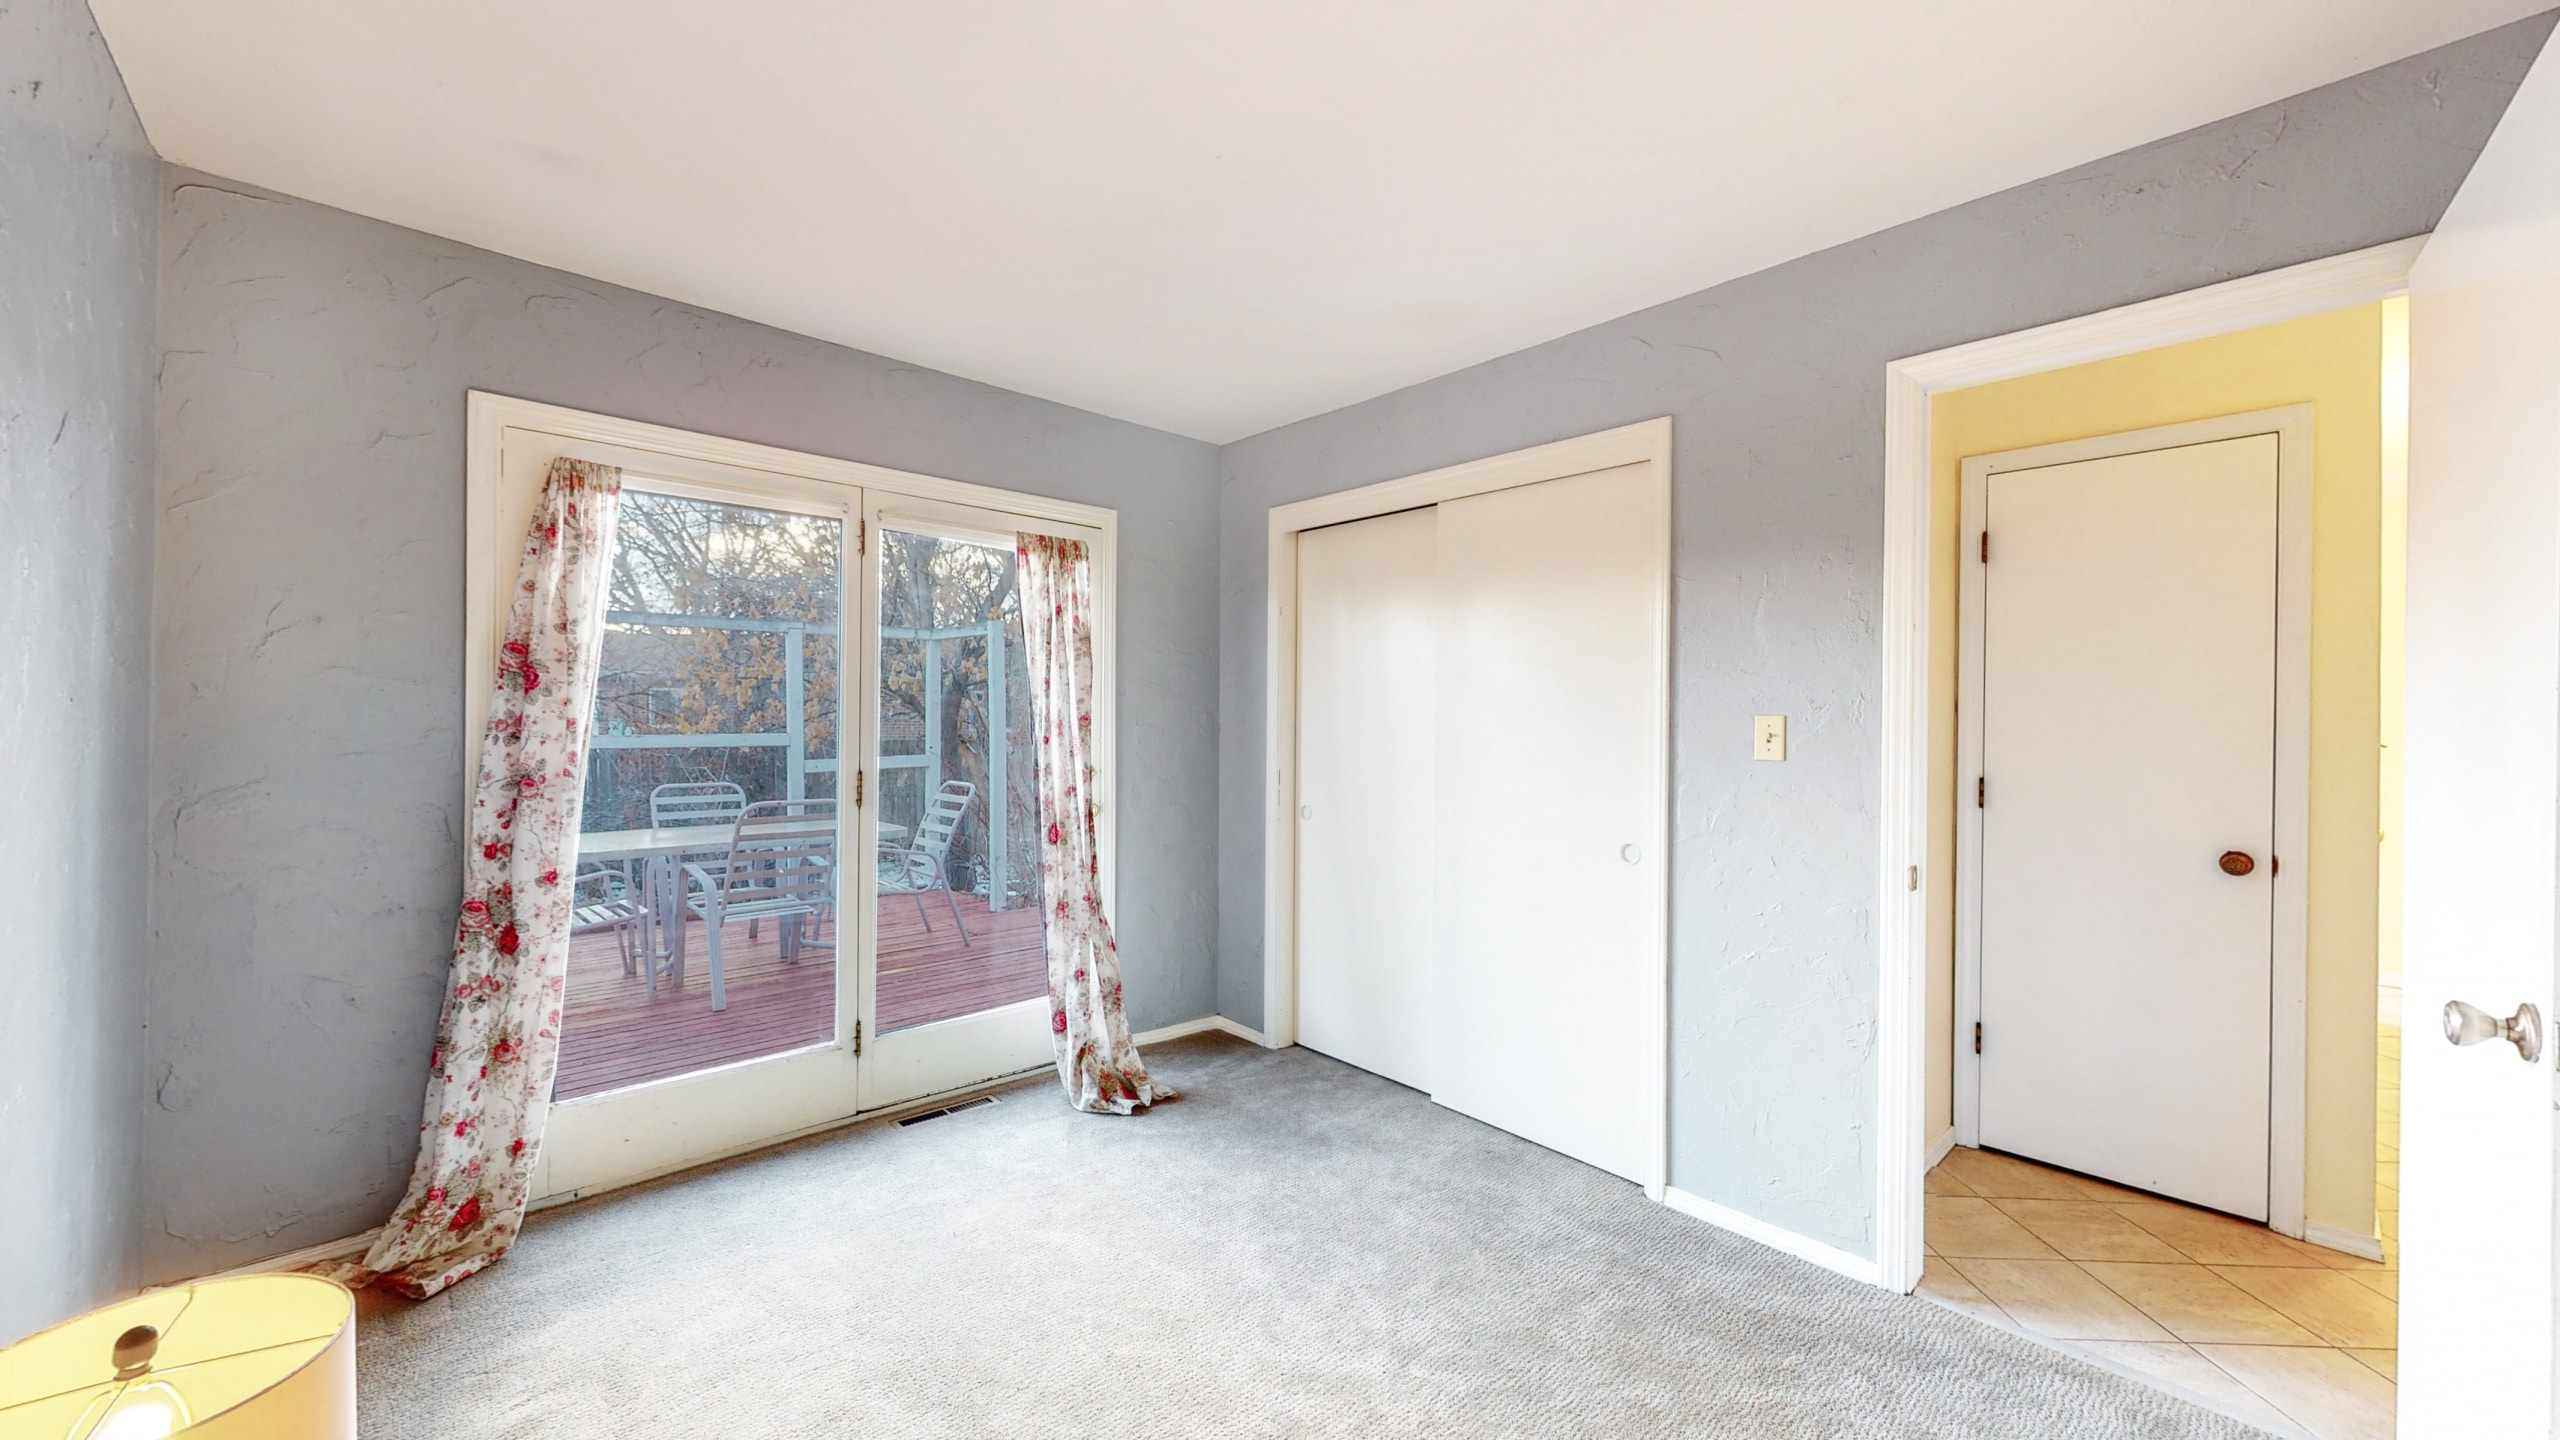 Brighton Home For Sale Bedroom With French Doors, Grey Walls, White Trim